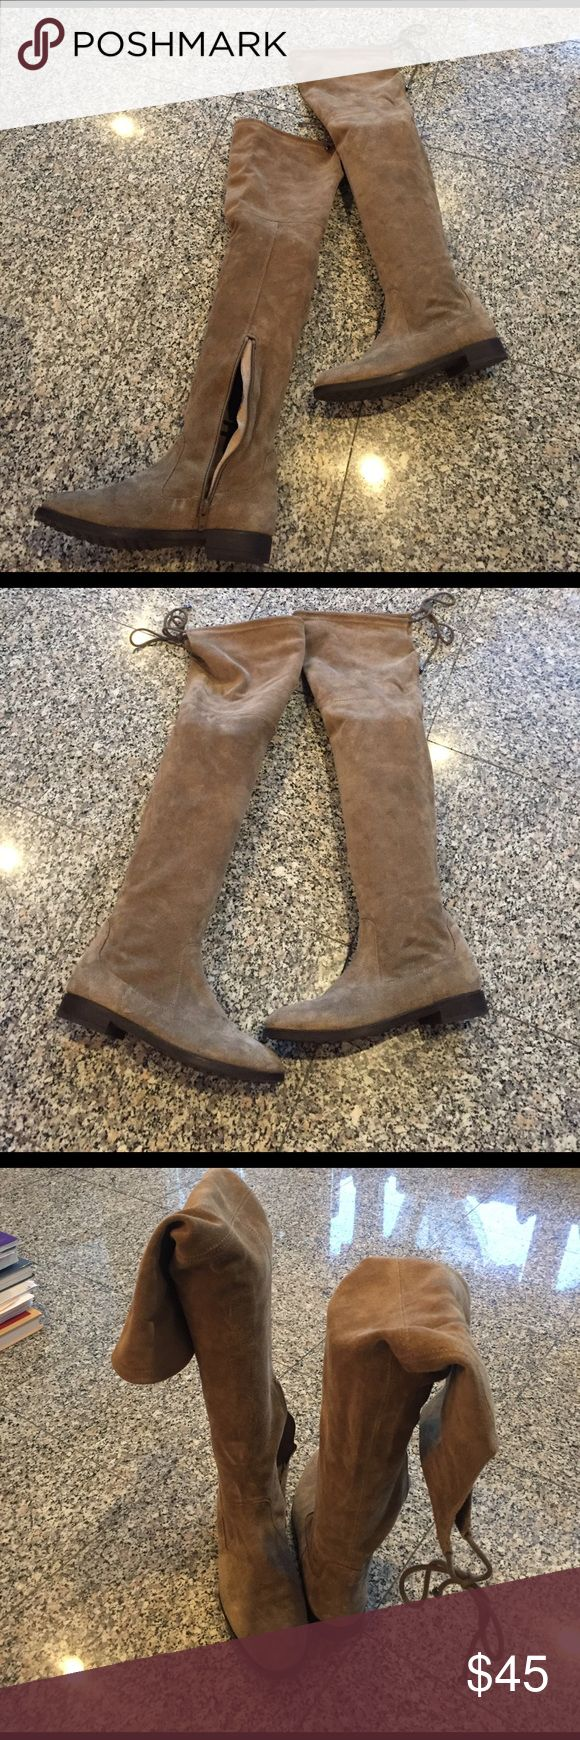 Gray suede Aldo boots‼️Worn Once‼️ Over the knee gray suede boots. Tie in the back but also has a zipper in the inner ankle. Runs a bit narrow. ‼️Only worn once.‼️ Hopefully this item can find a new fabulous home !Love it but to pricy? Would love for you to make an offer. Xx Aldo Shoes Over the Knee Boots